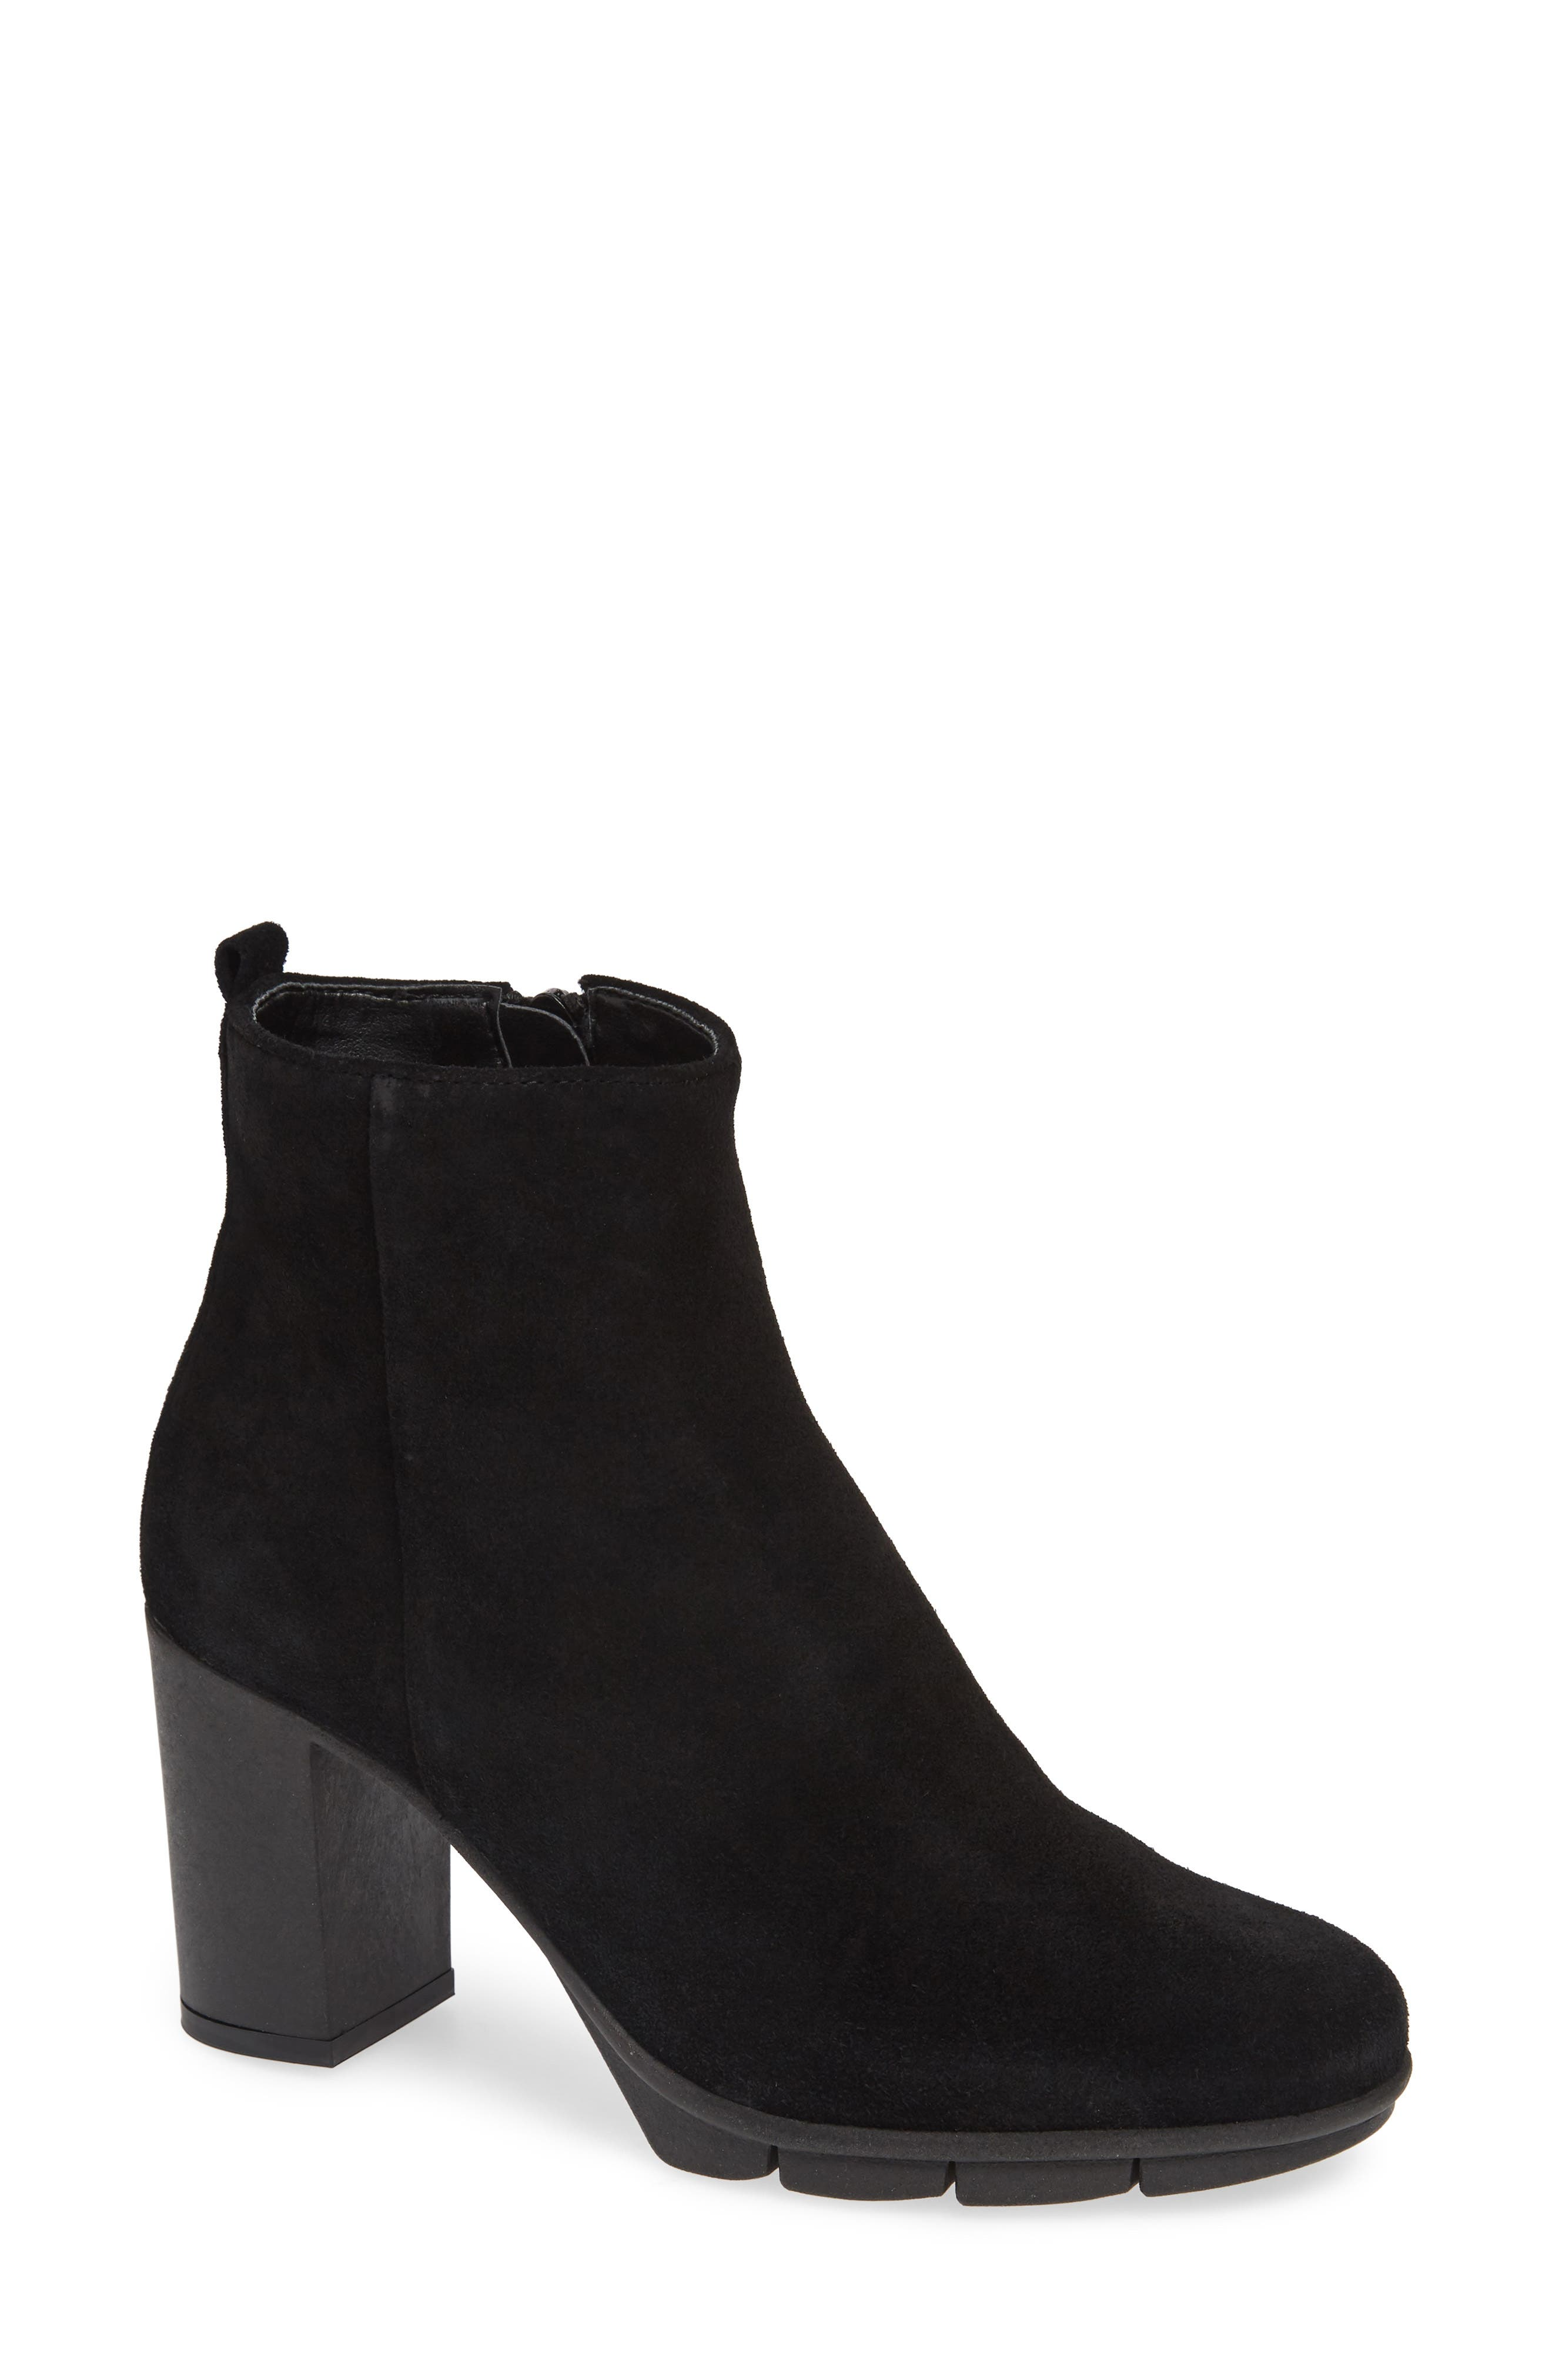 The Flexx Citi Fied Zip Bootie, Black